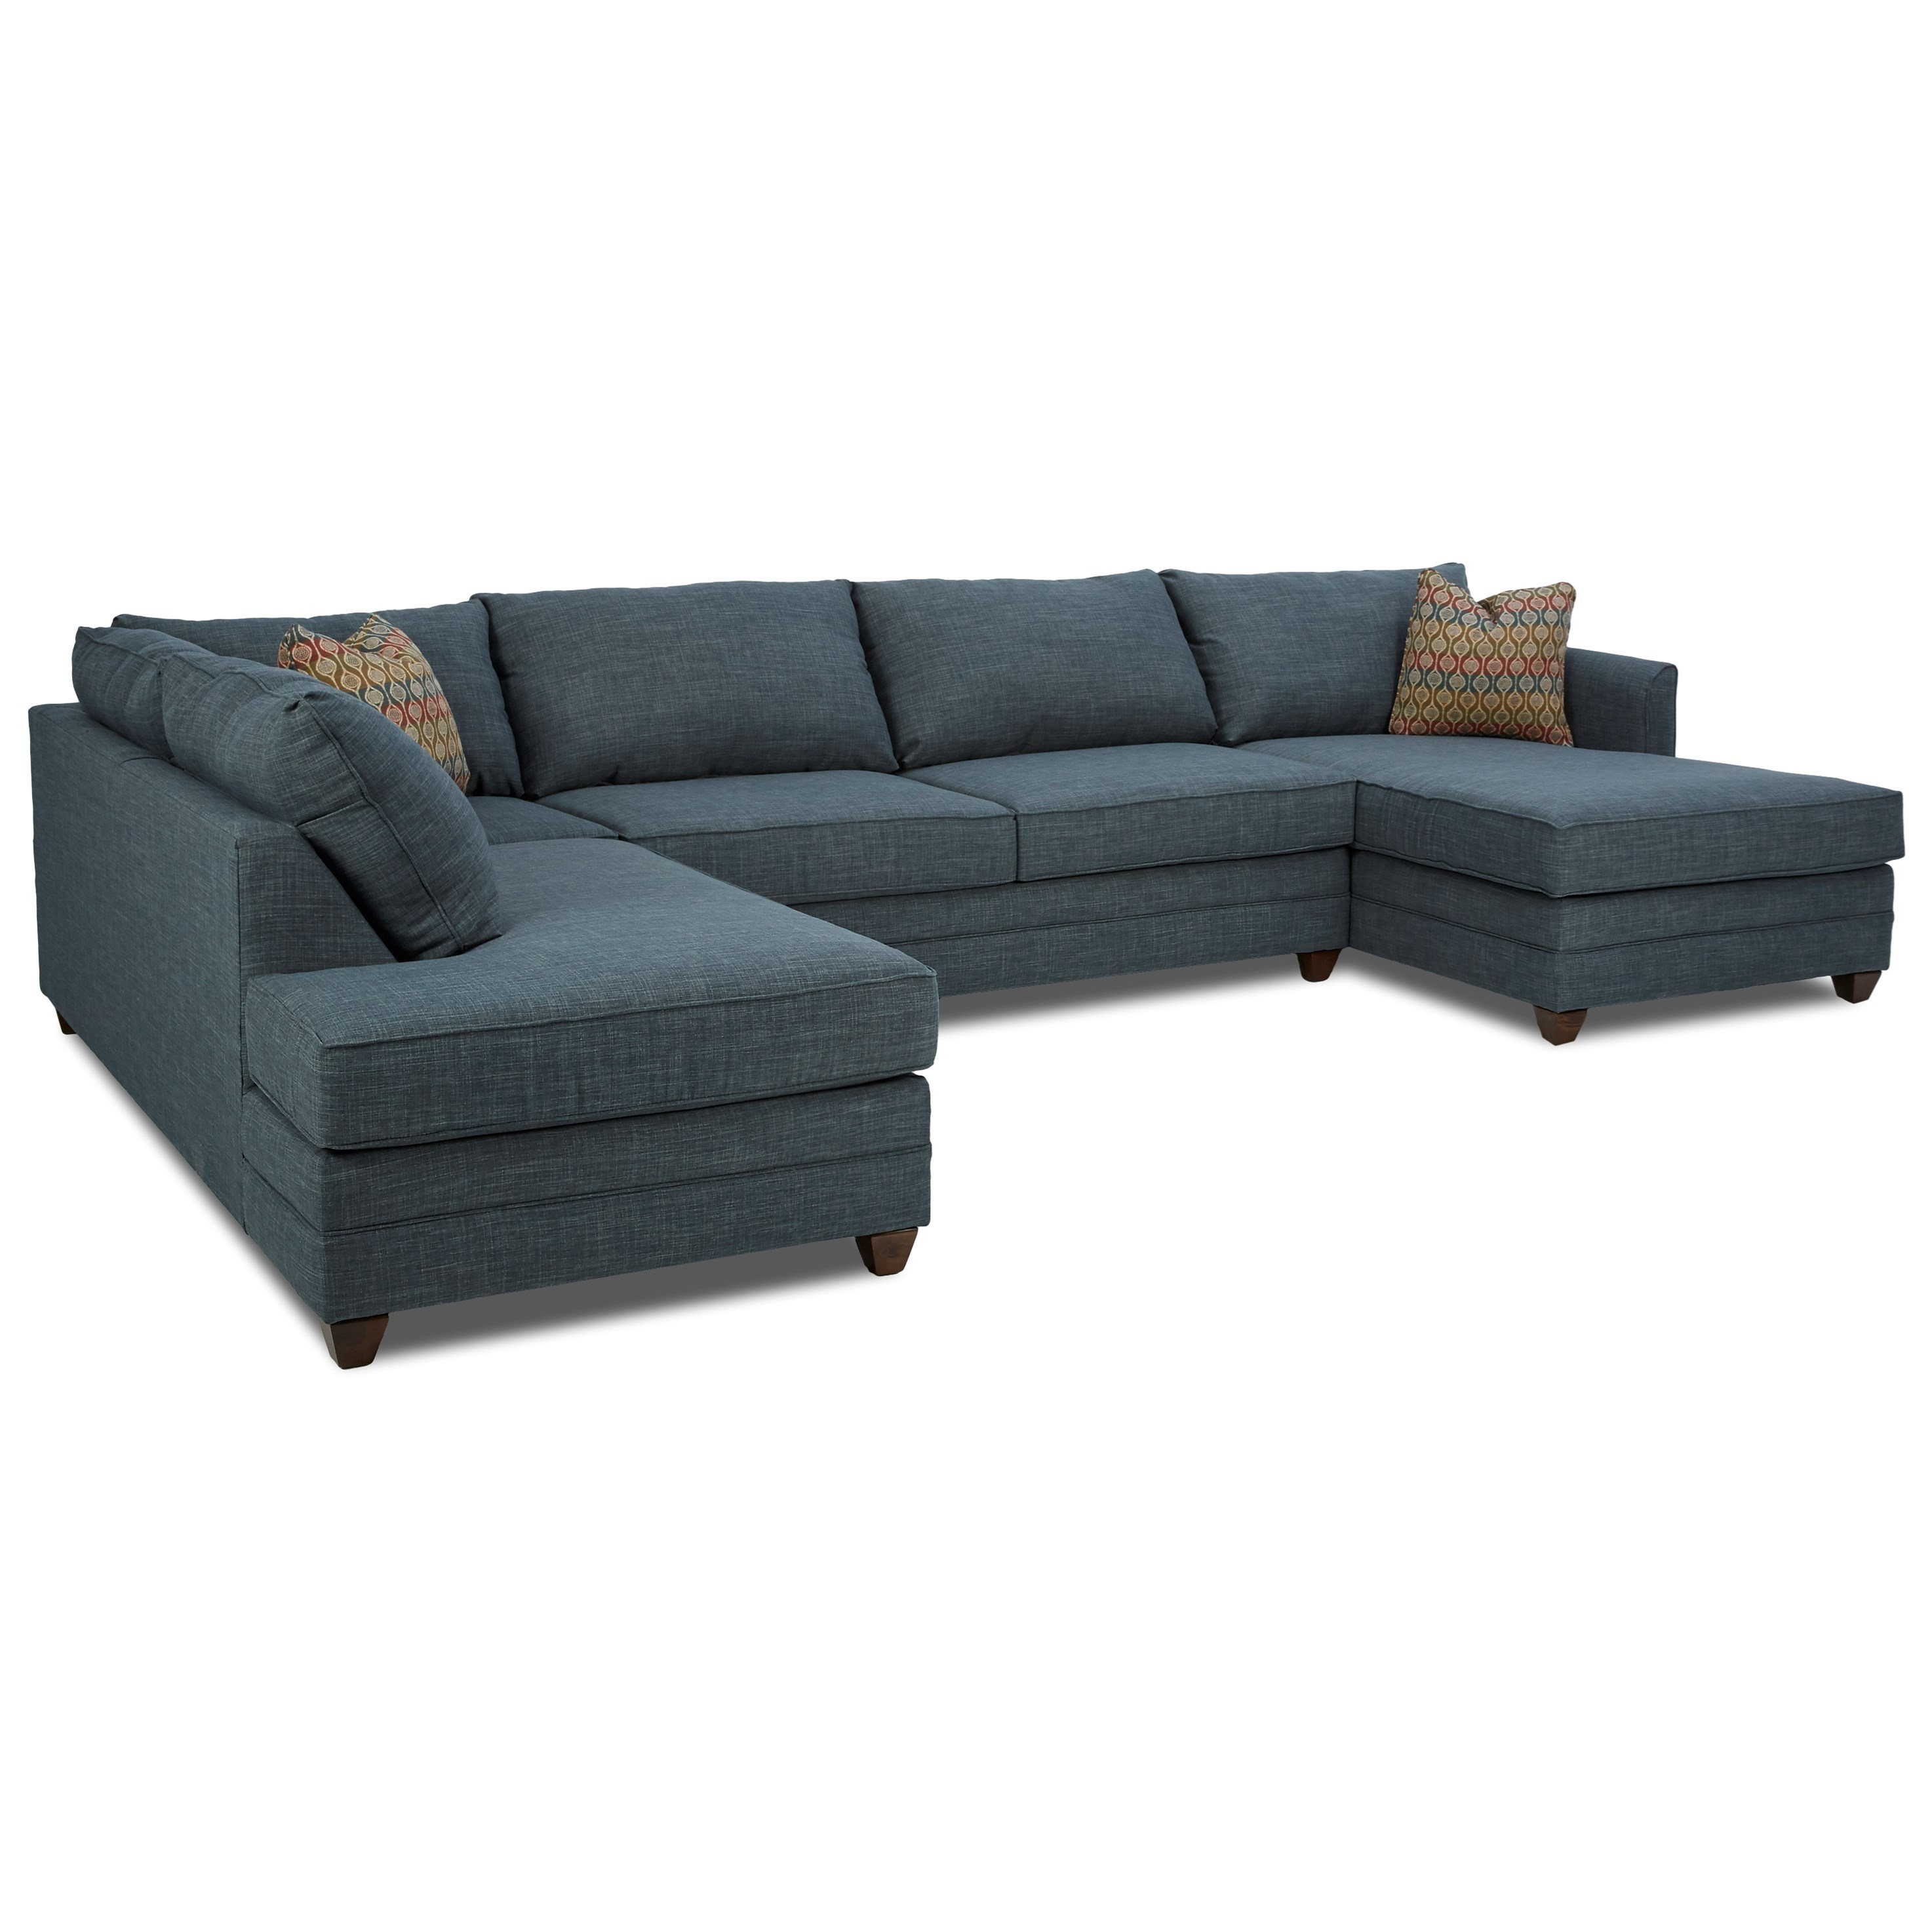 Three Piece Sectional Sofa with RAF Chaise by Klaussner